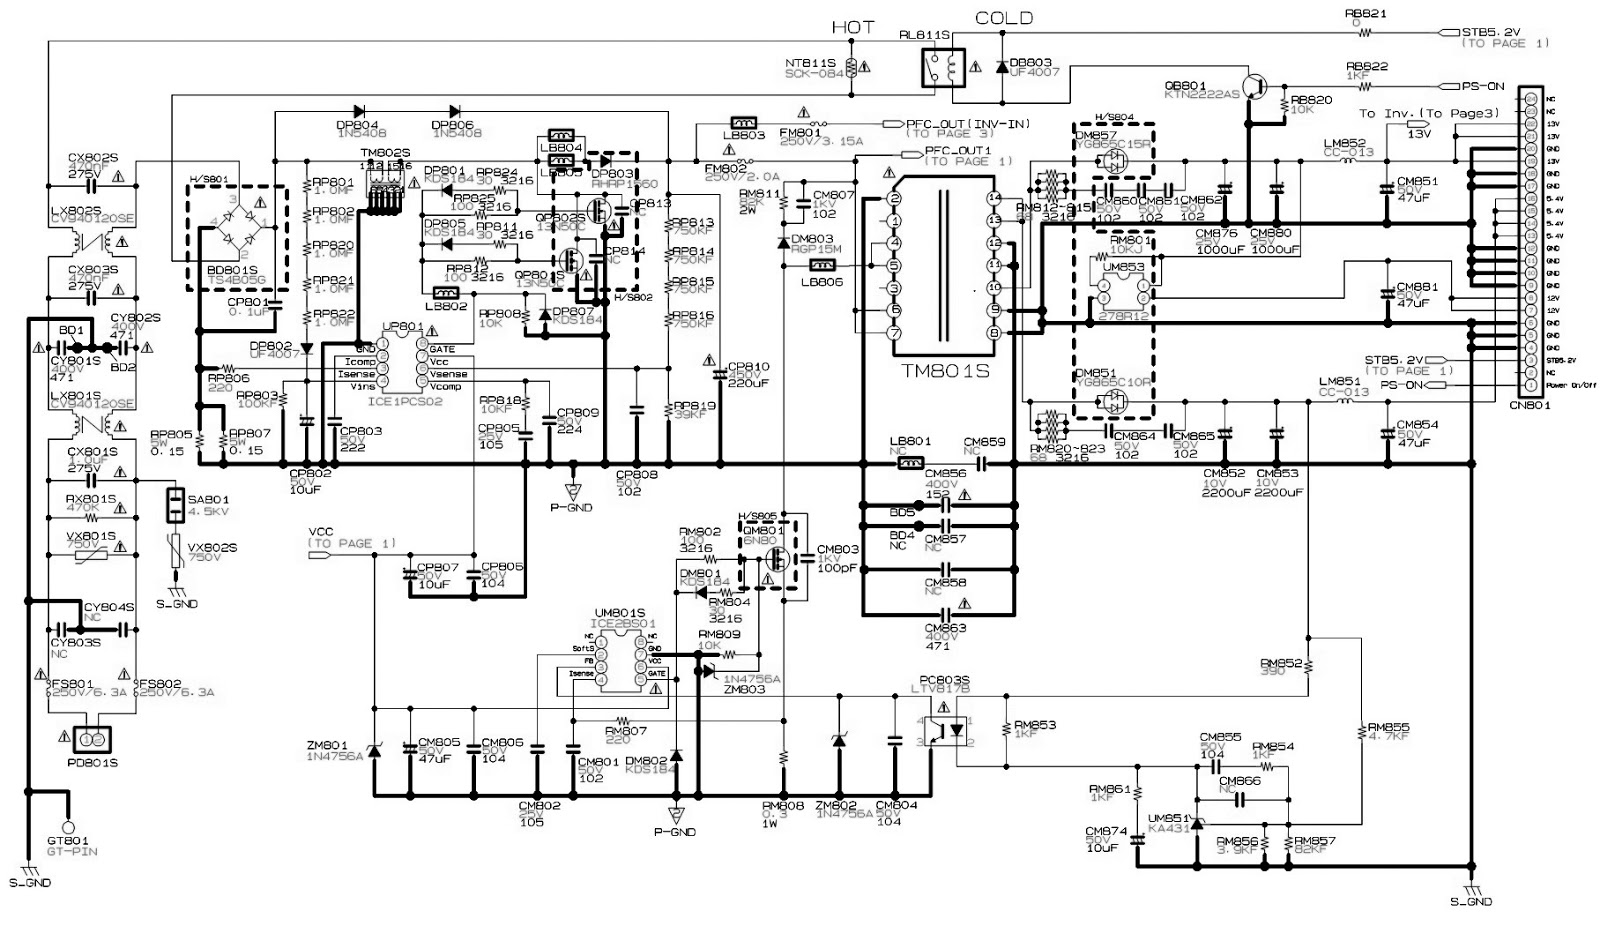 bn44 00165a samsung led lcd tv circuit diagram. Black Bedroom Furniture Sets. Home Design Ideas